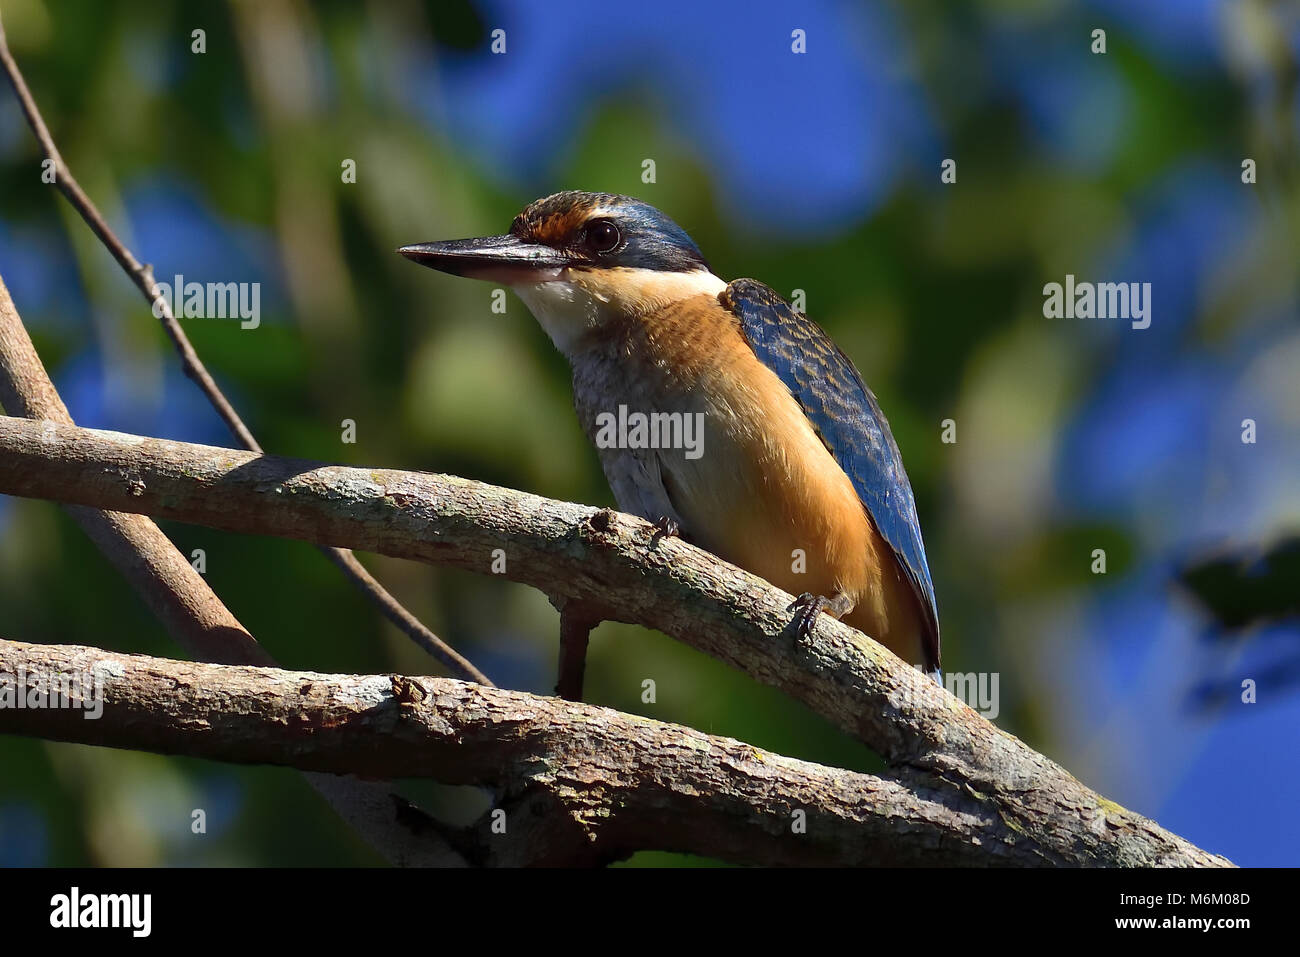 An Australian Immature Sacred Kingfisher resting on a Tree branch - Stock Image